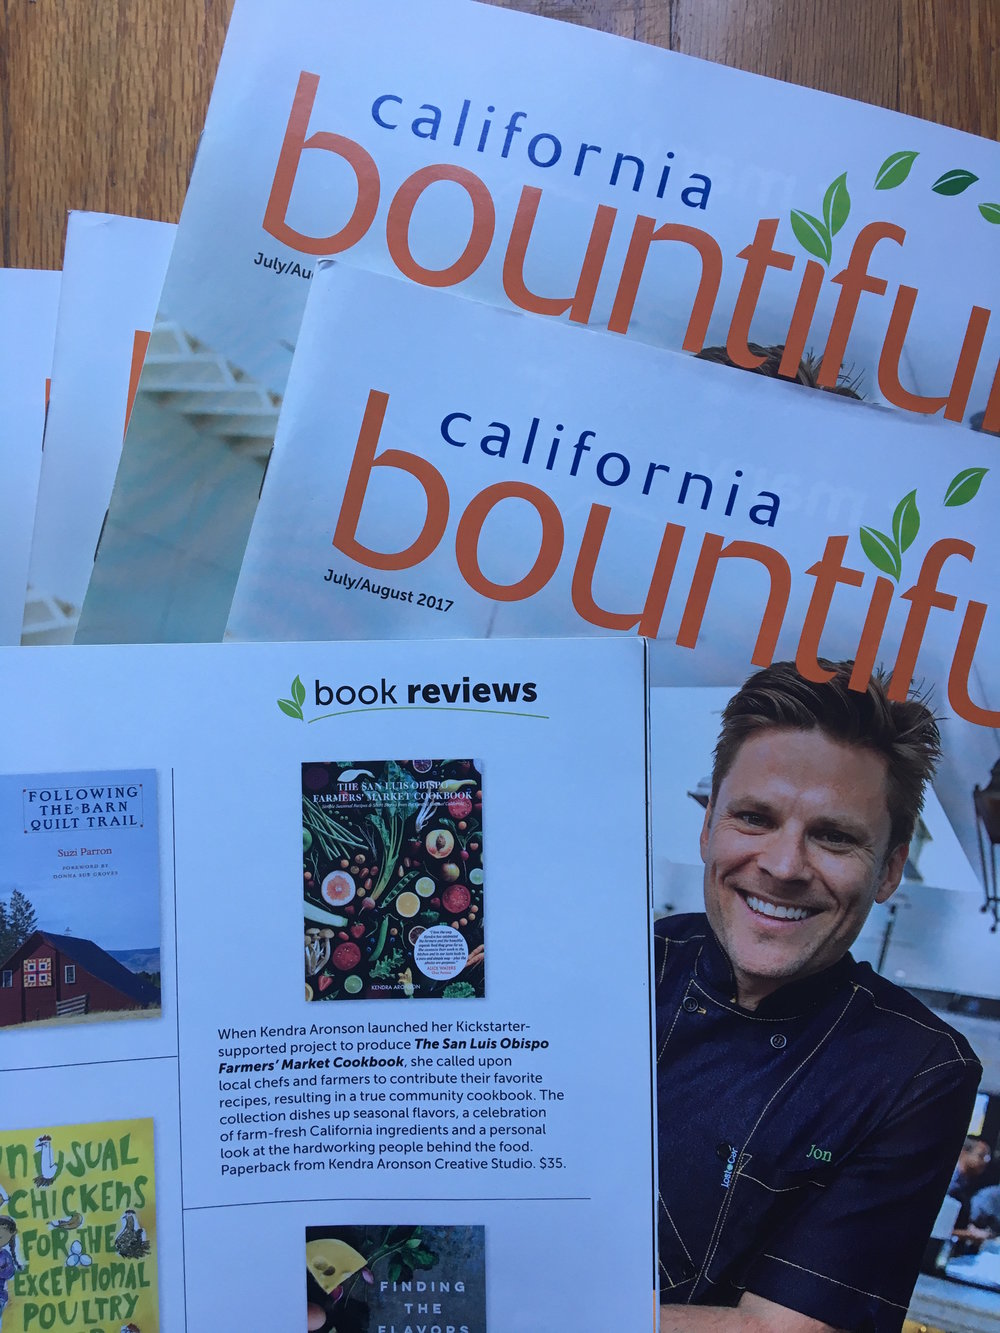 slo-farmers-market-cookbook-press